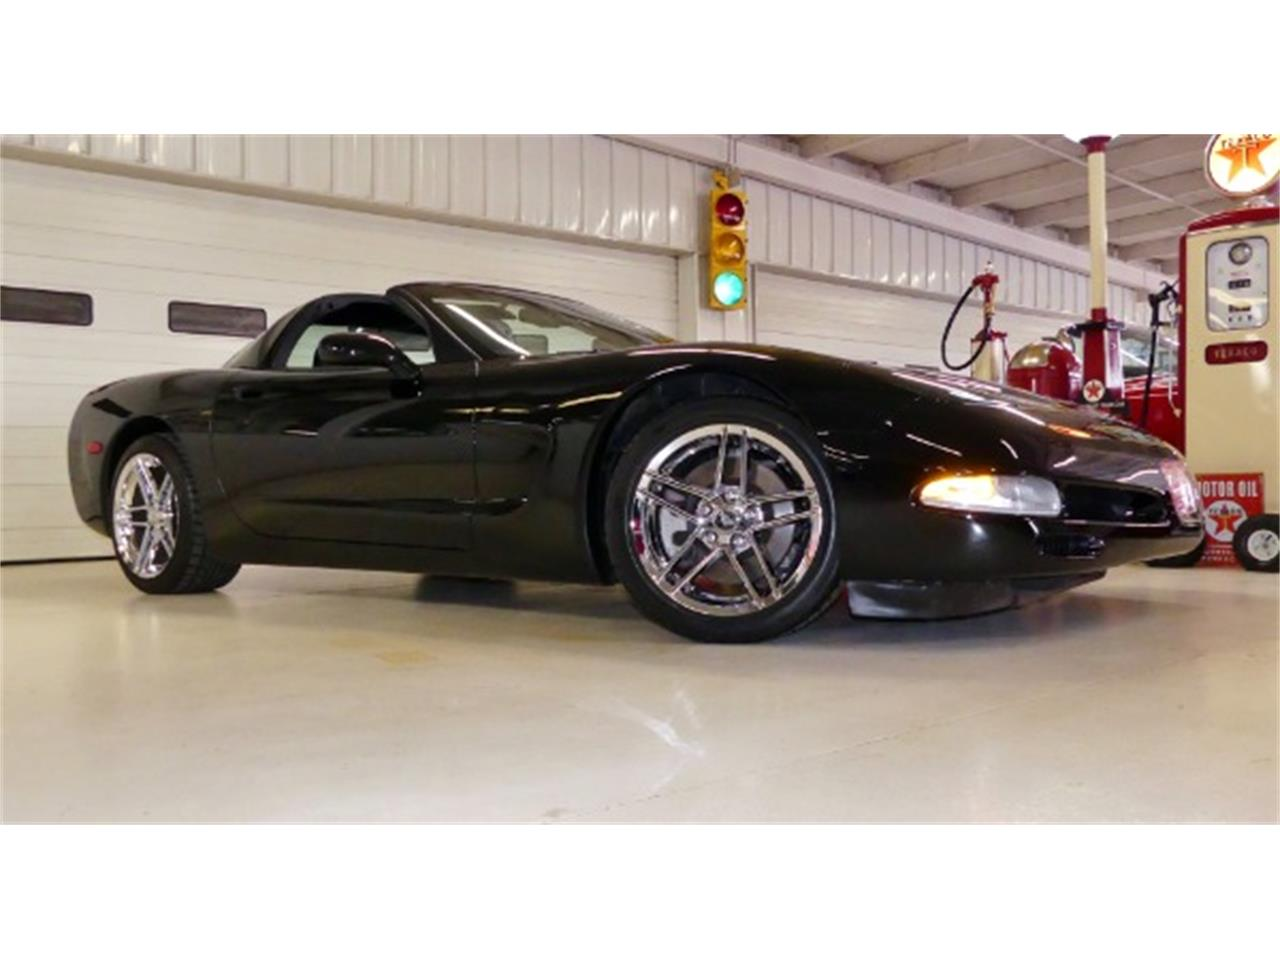 Large Picture of 1998 Chevrolet Corvette located in Ohio - $18,995.00 - PV85